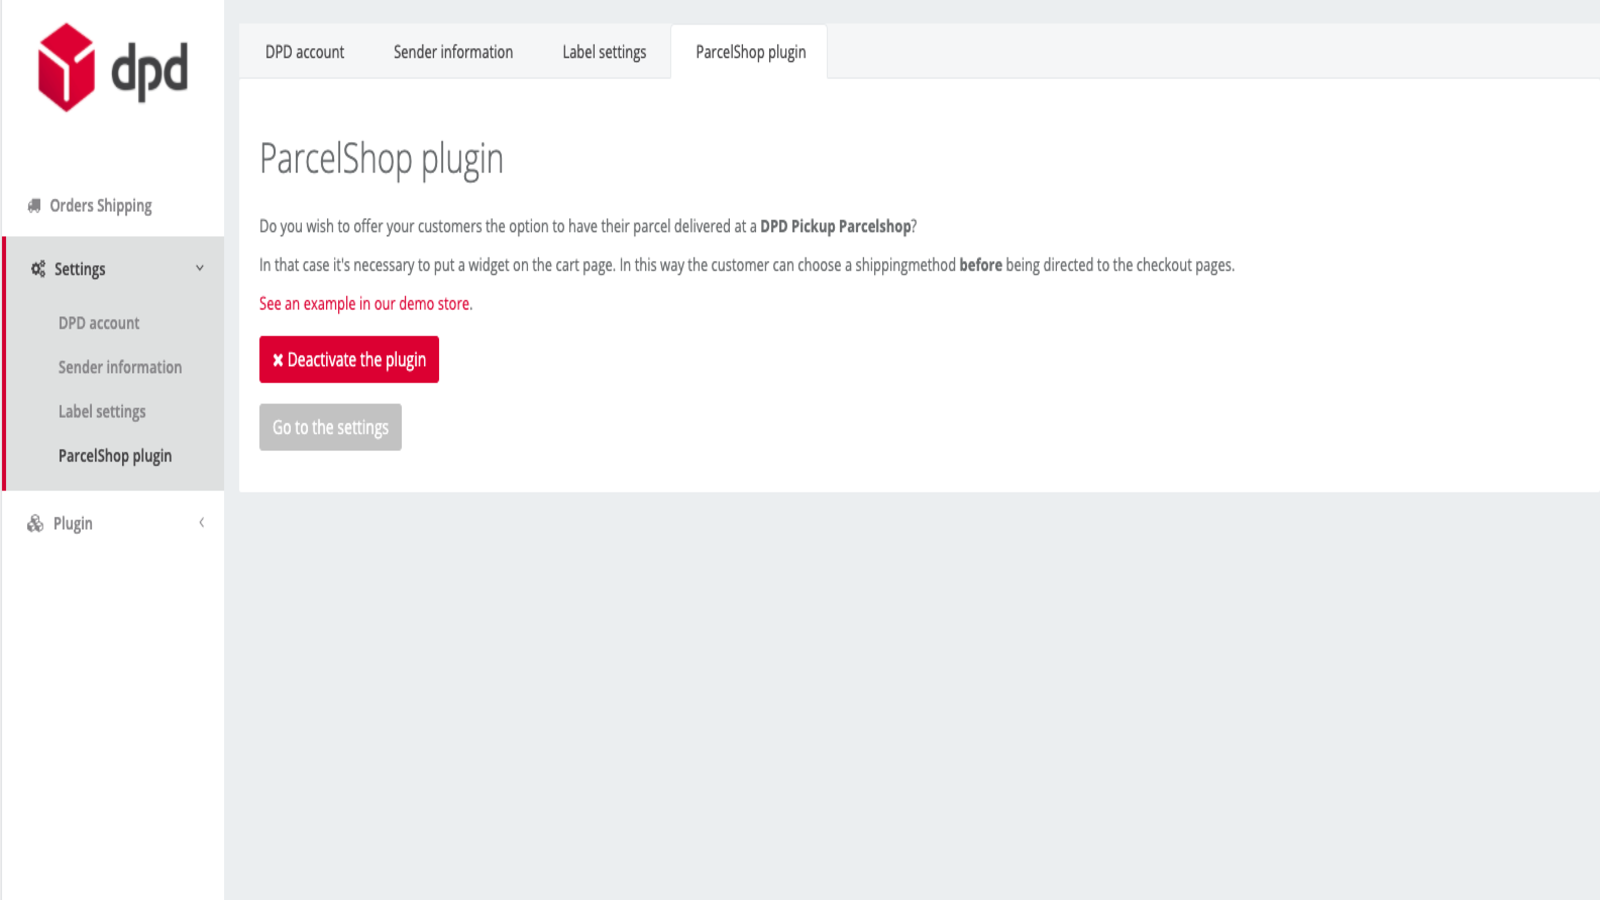 Add parcelshops to the cart page